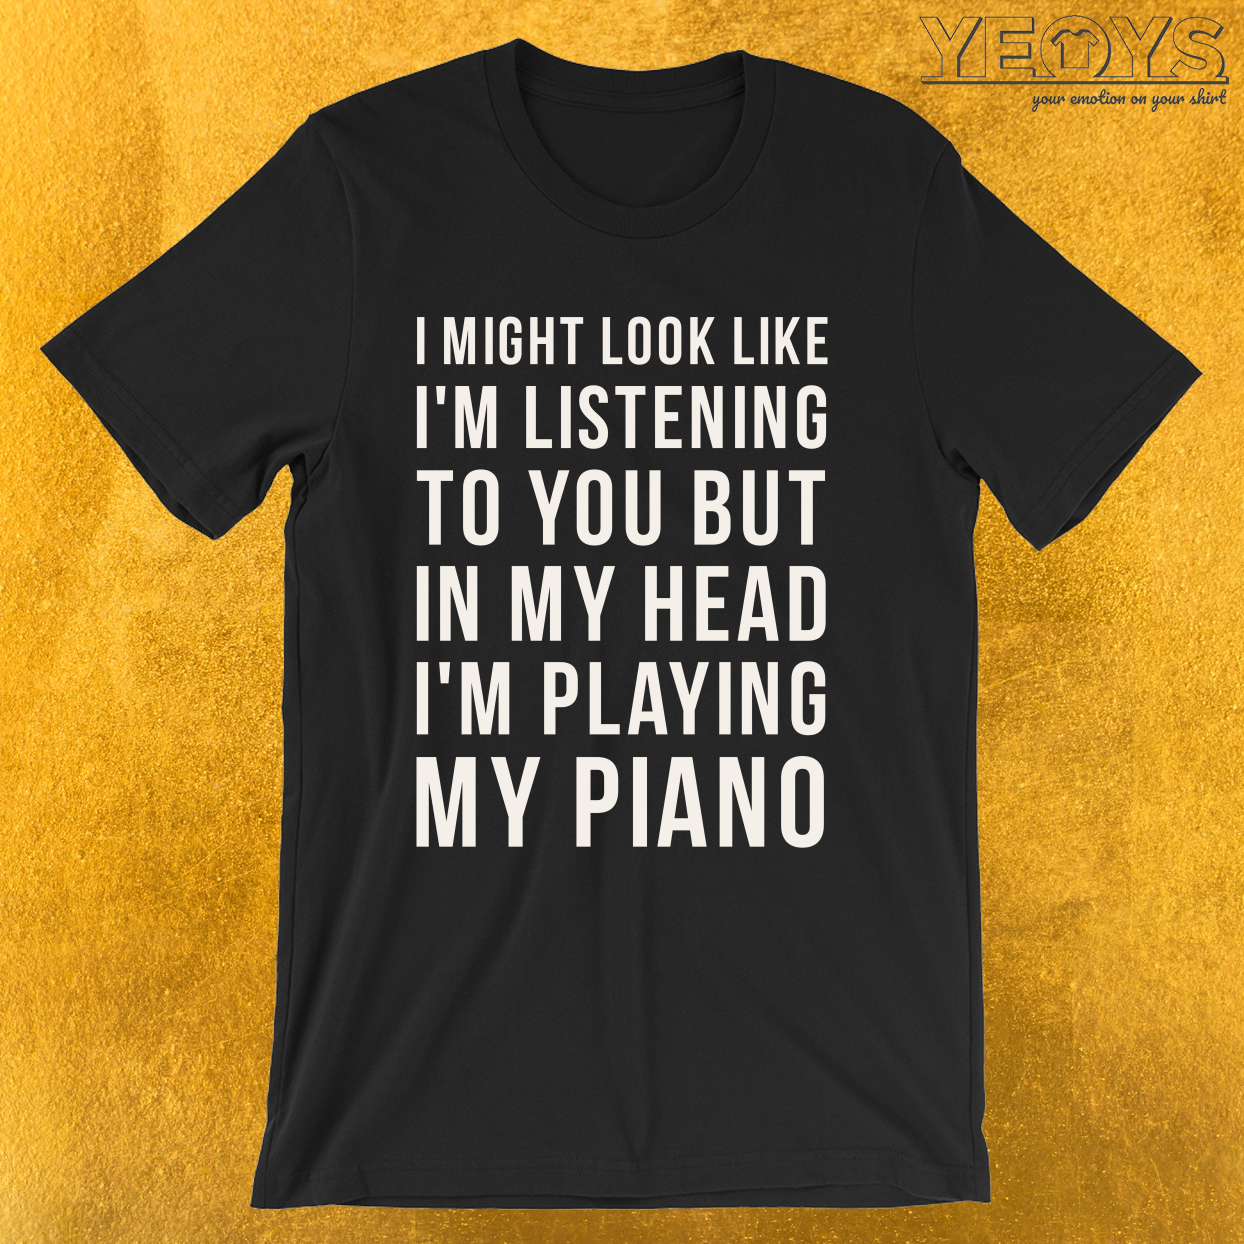 In My Head I'm Playing My Piano – Funny Piano Quotes Tee